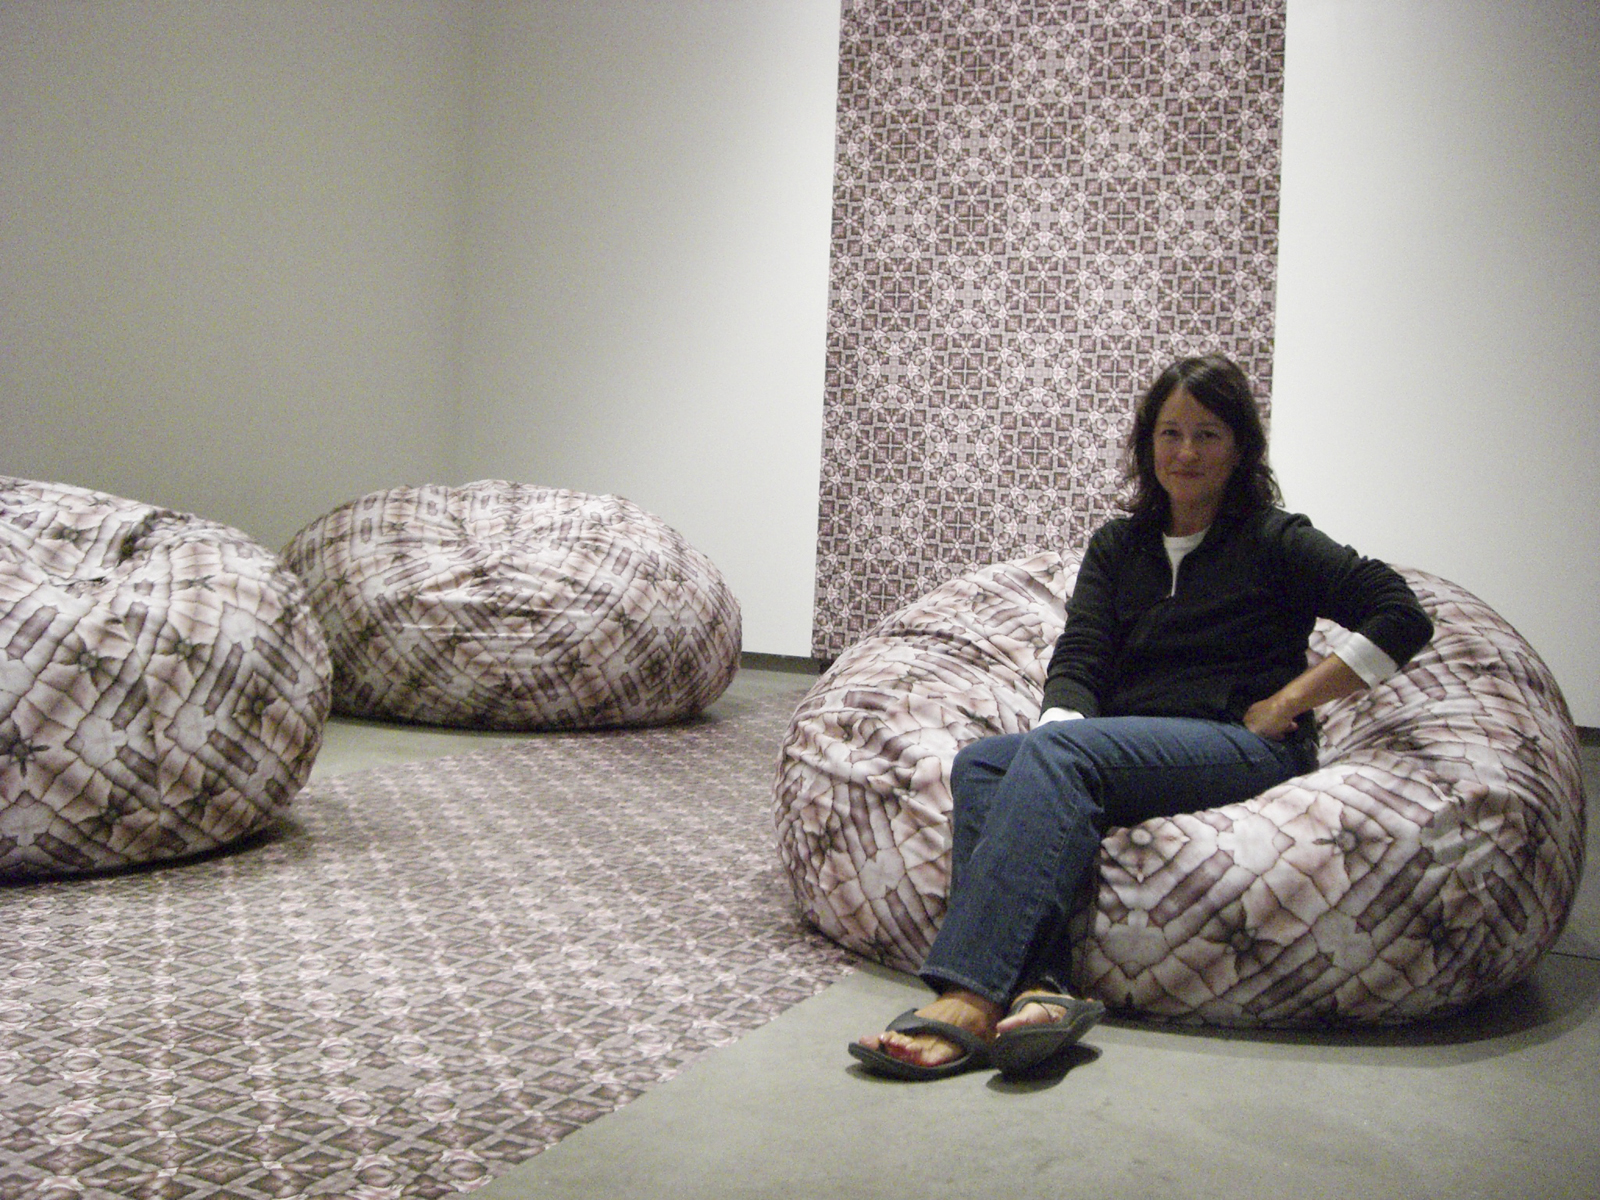 Jenny seated in her We Are Family Installation, ICA @ MECA